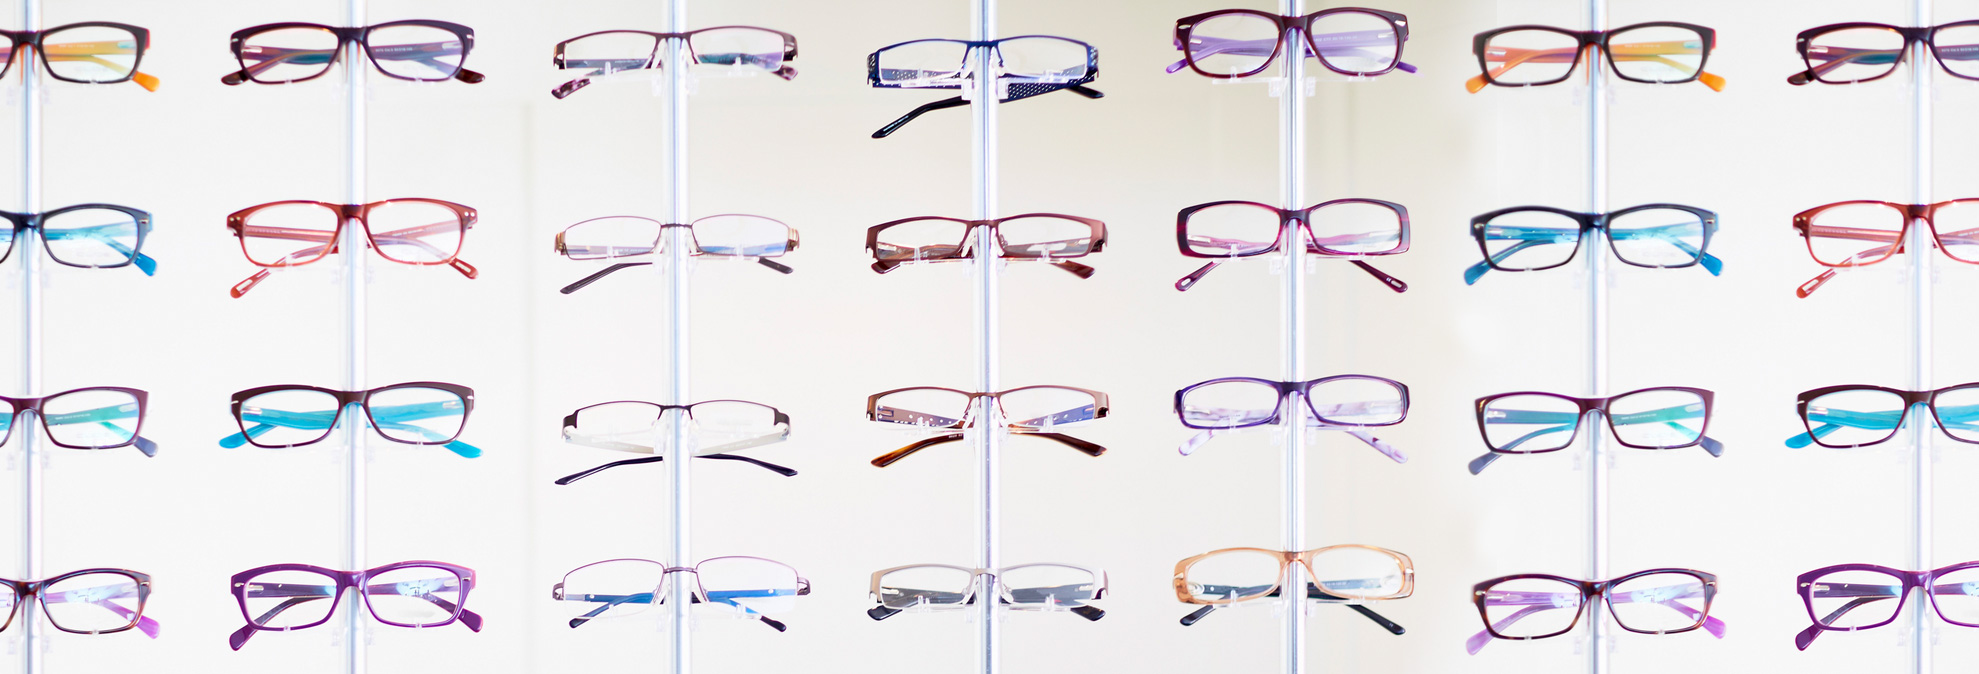 29f0cb7606 8 Great Ways to Save on the Cost of Eyeglasses - Consumer Reports